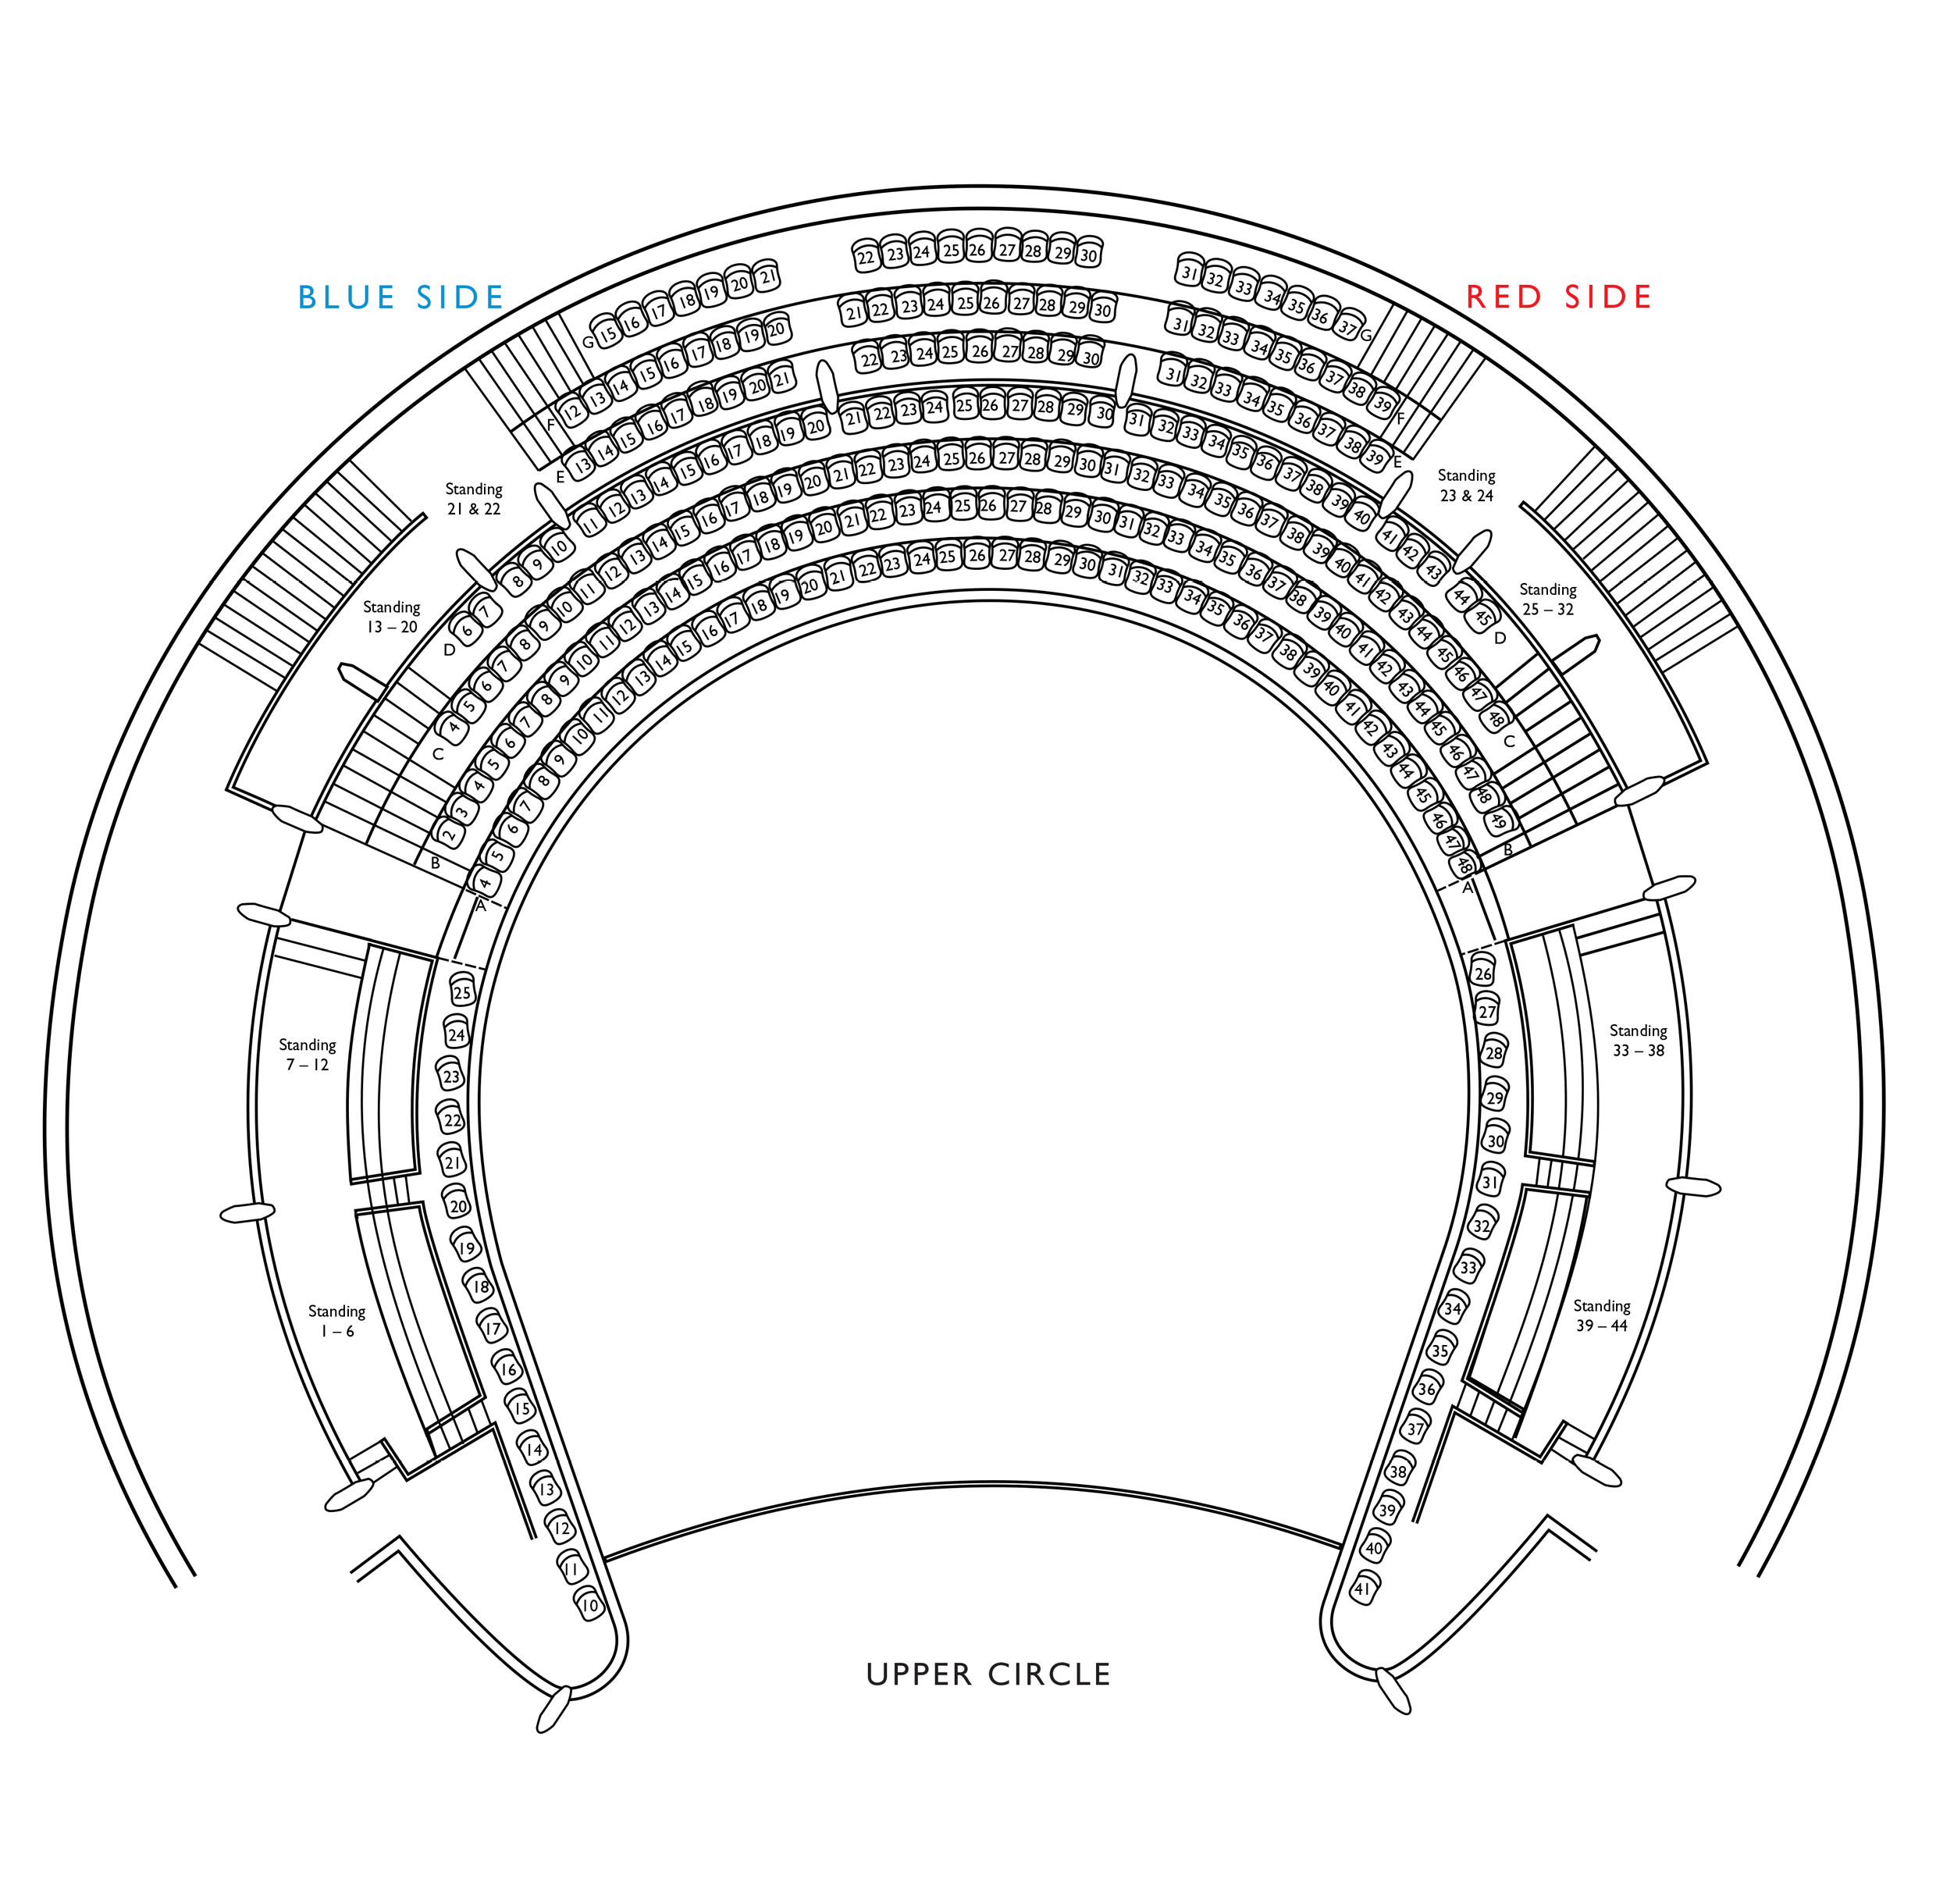 Auditorium Seating Plans